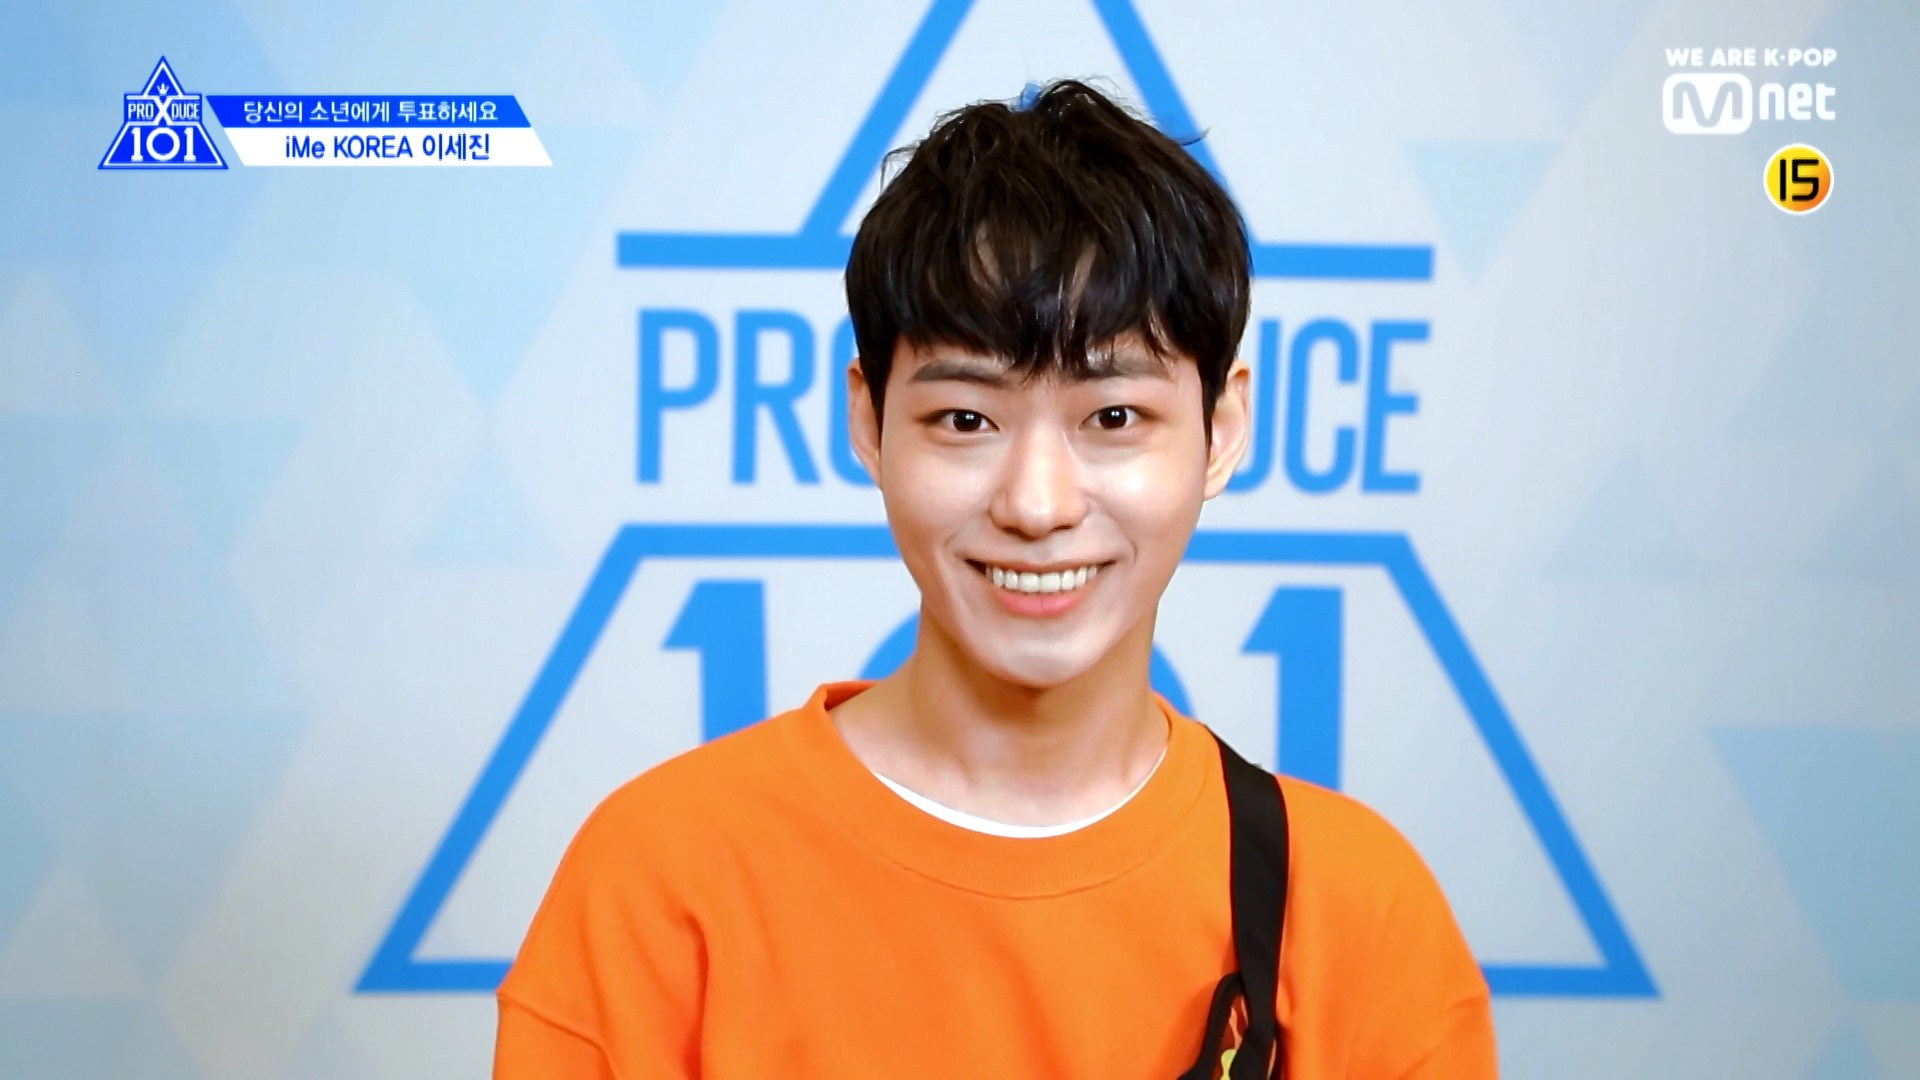 [PRODUCE X 101] EYE CONTACT CHALLENGE l LEE SE JIN(iME Korea)